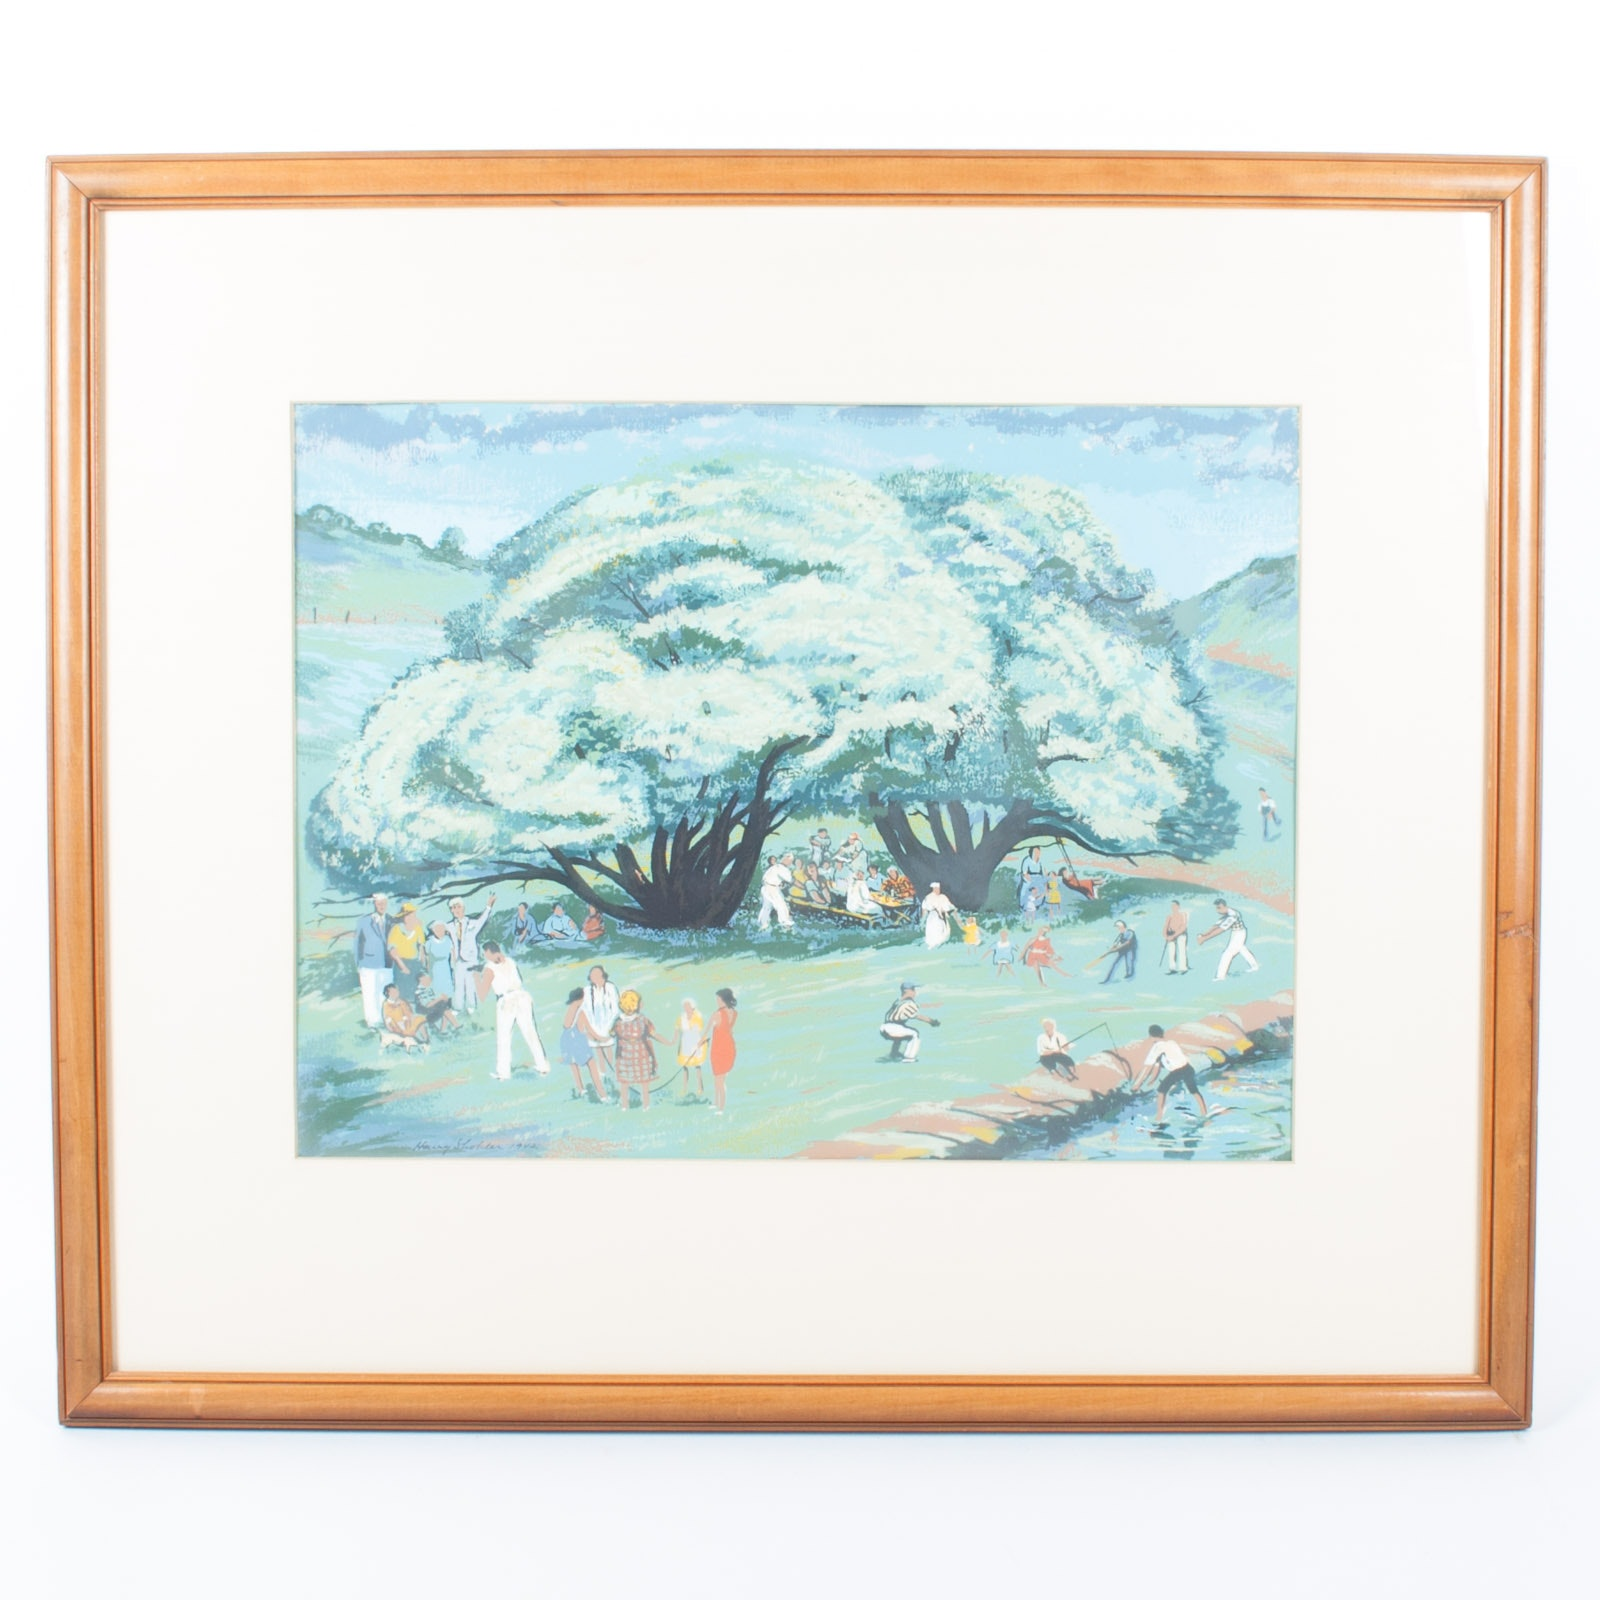 Harry Shokler 1942 Acrylic Painting on Paper of a Summer Picnic